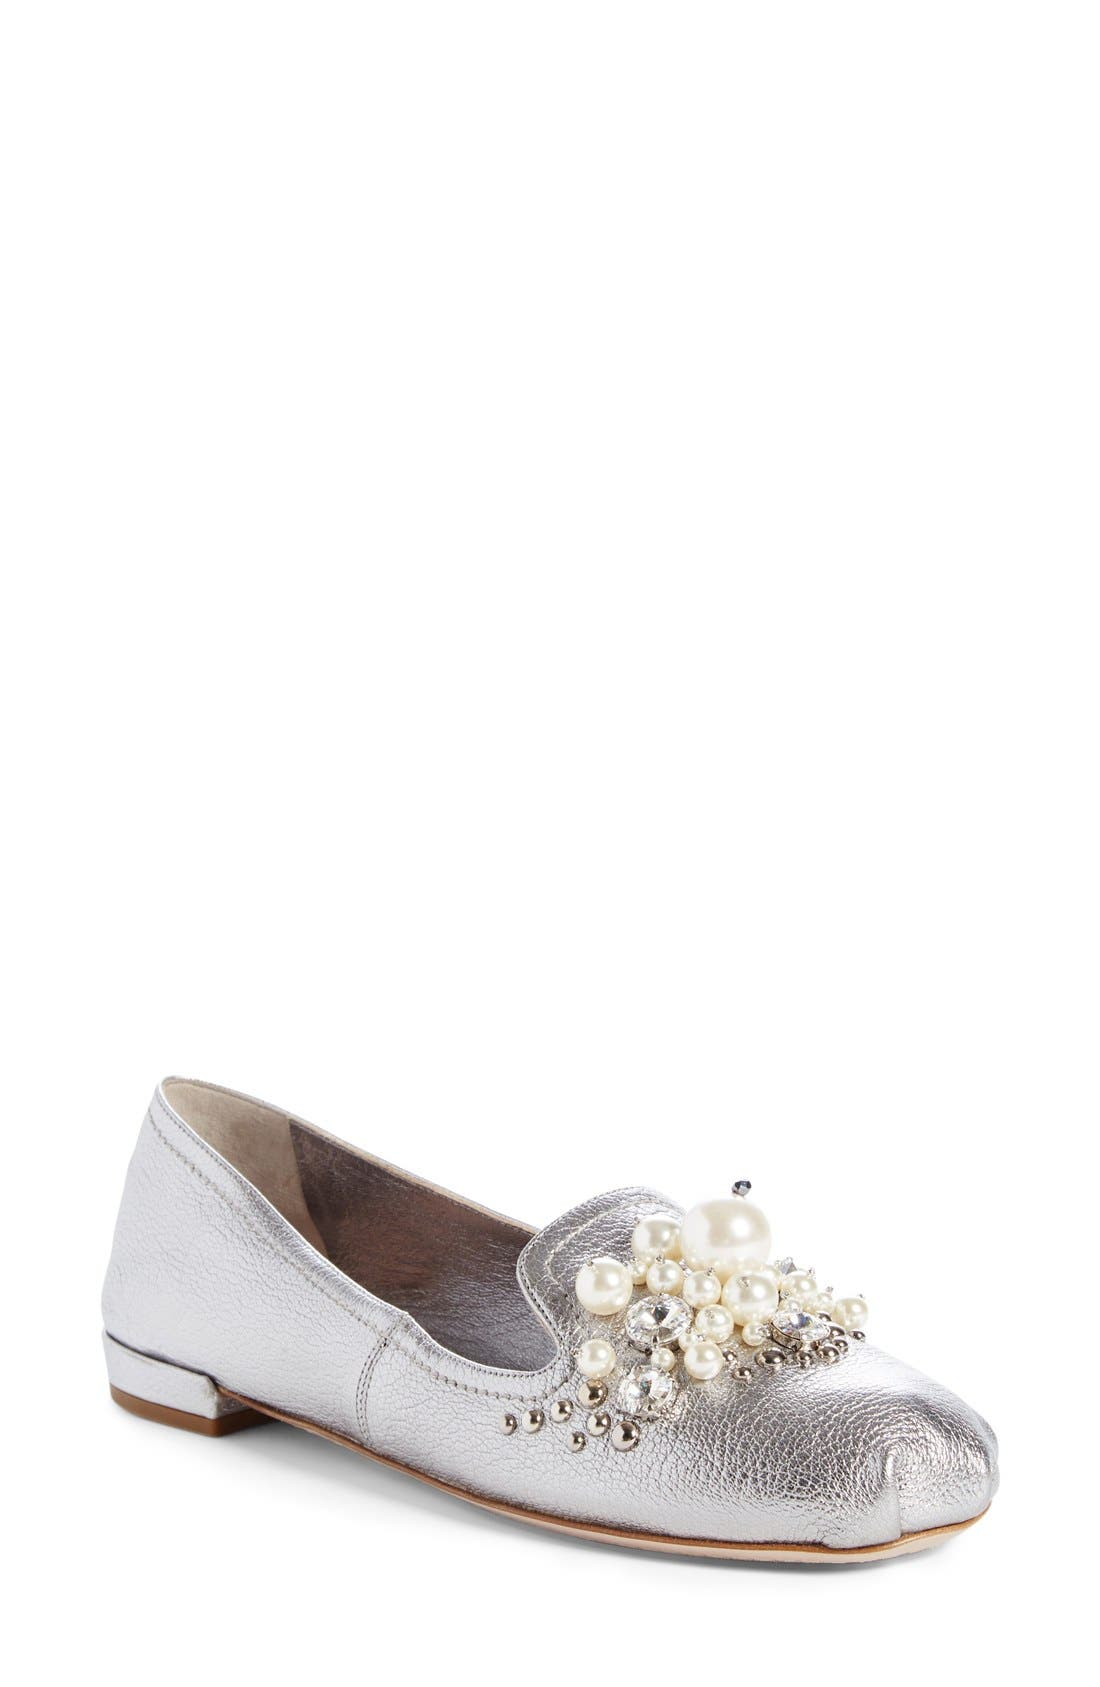 Miu Miu Embellished Loafer (Women)